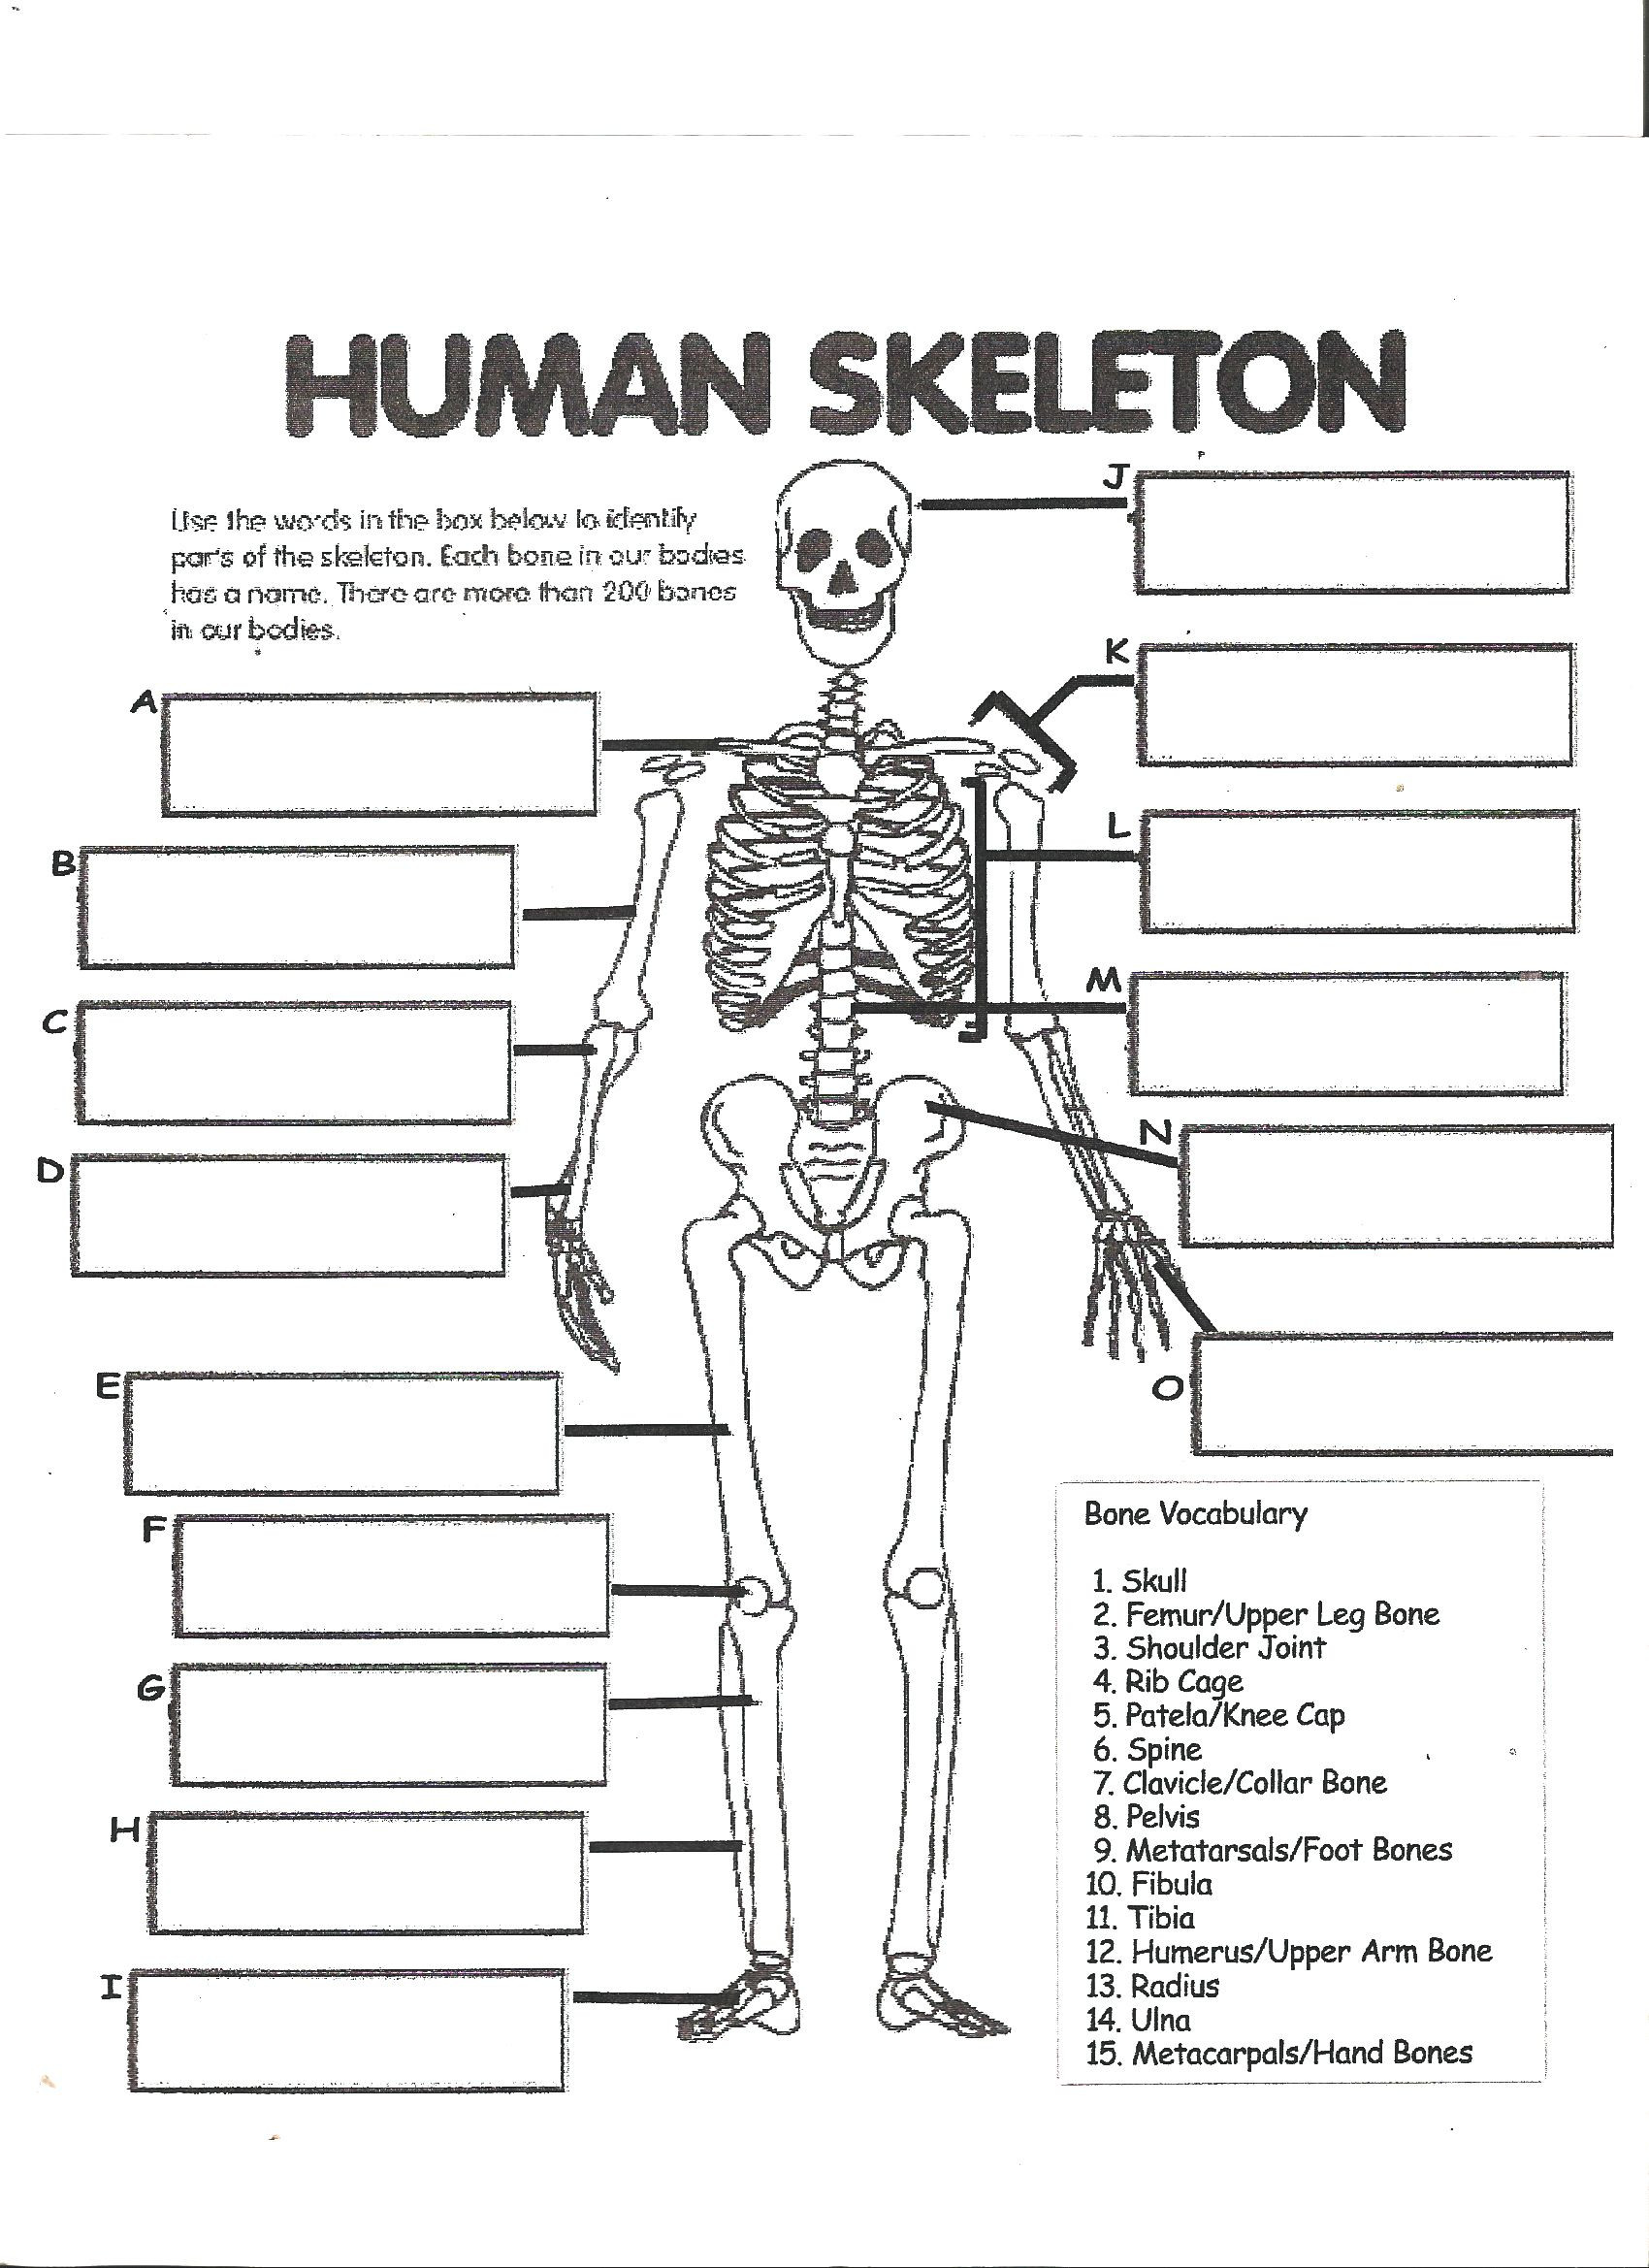 Digestive System Worksheets Middle School Digestive System Labeling Worksheet Answers Human Skeleton